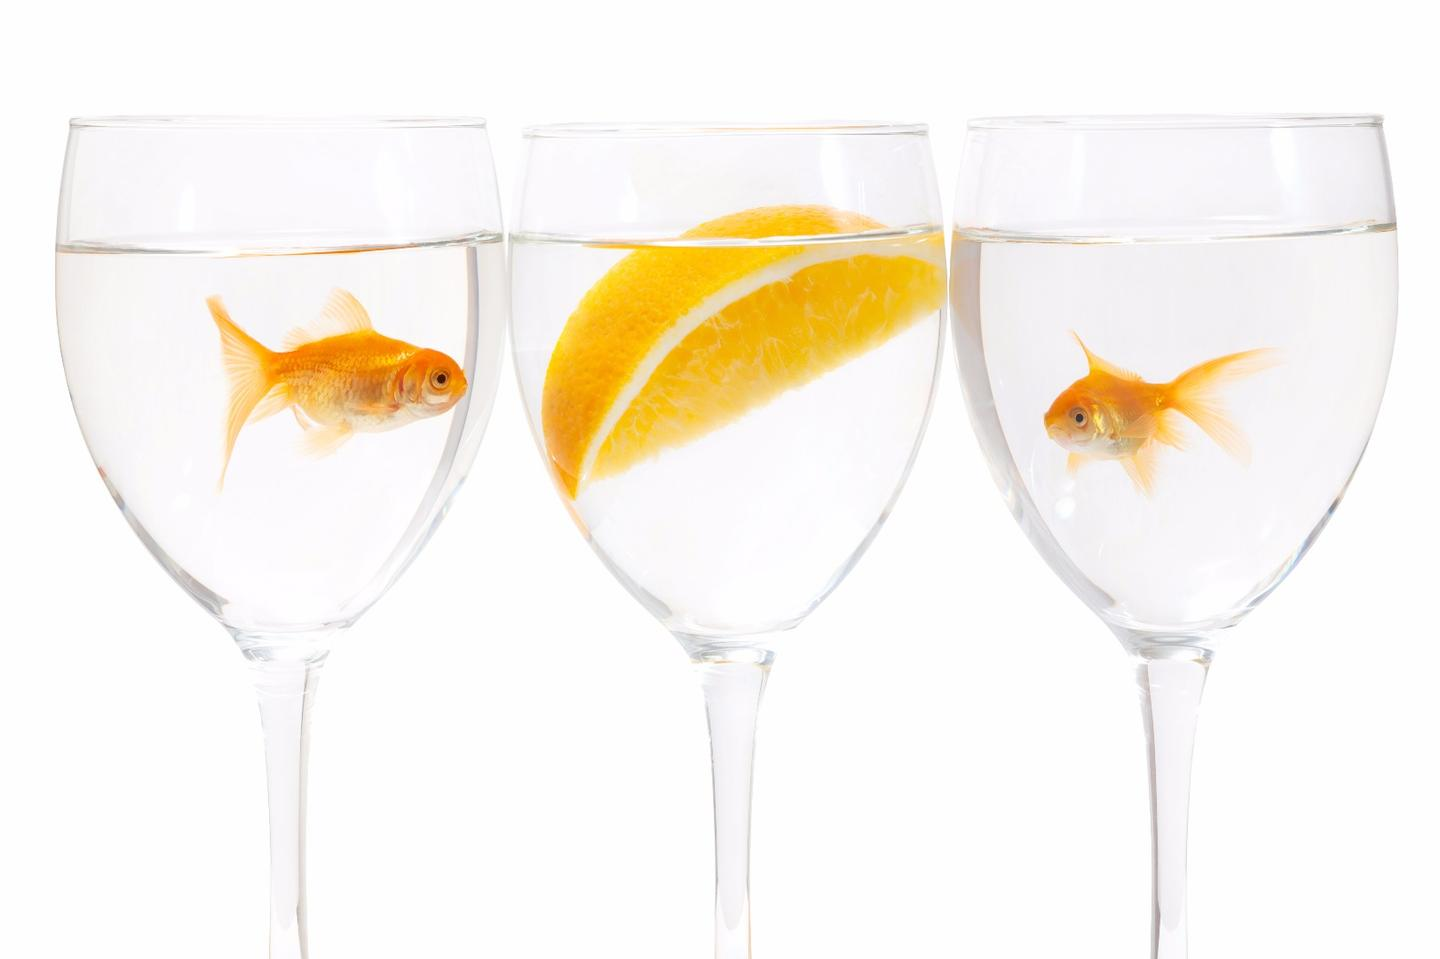 European researchers have discovered how agoldfish, and its cousin the crucian carp, create their own alcohol to help them survive the winter